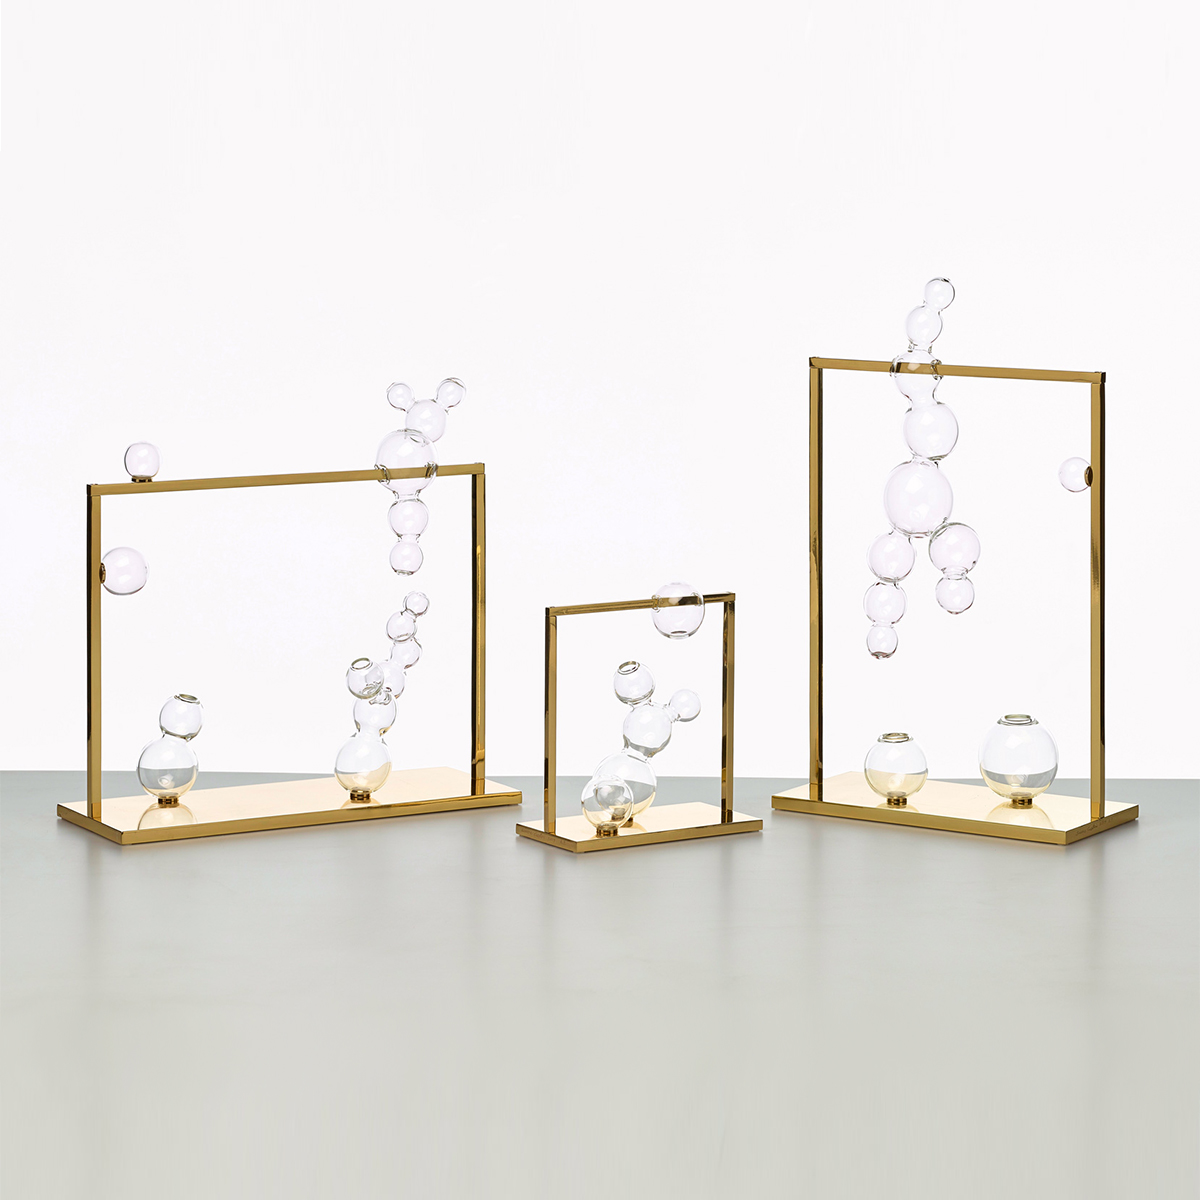 Handmade glass and brass vases